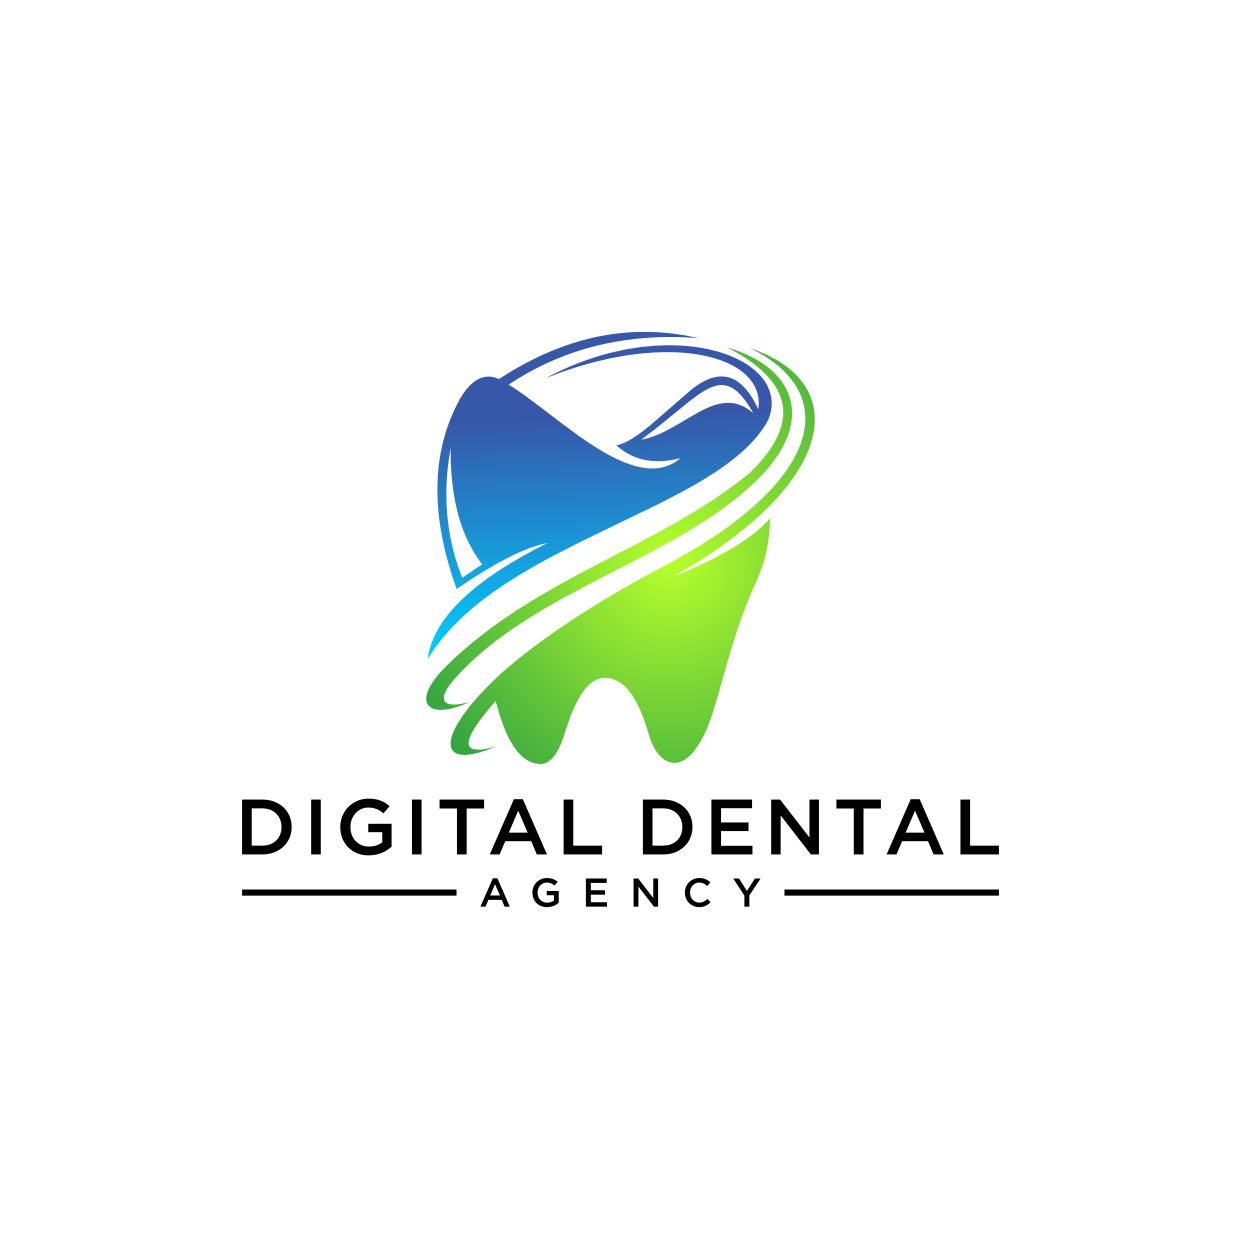 Logo Design by Analla Art - Entry No. 7 in the Logo Design Contest Imaginative Logo Design for Digital Dental Agency.